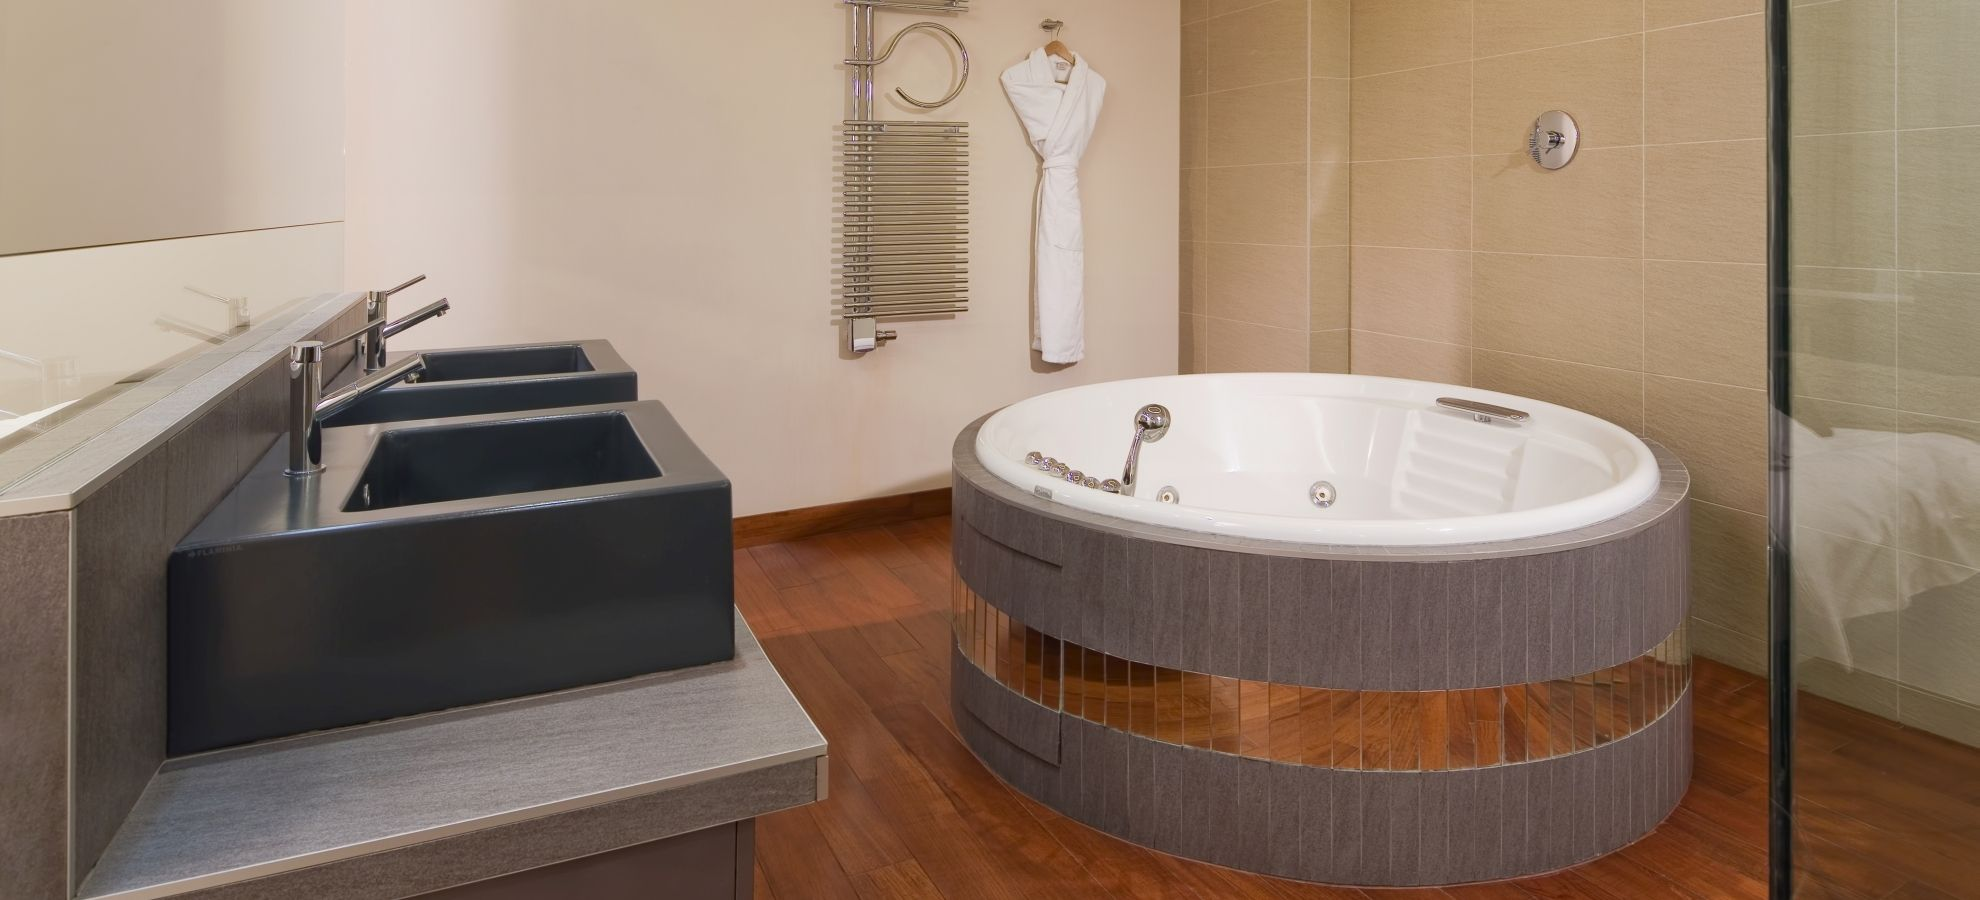 Mamaison-Hotel-Pokrovka-Moscow-One-bedroo-Exceptional-Suite-Bathroom.jpg